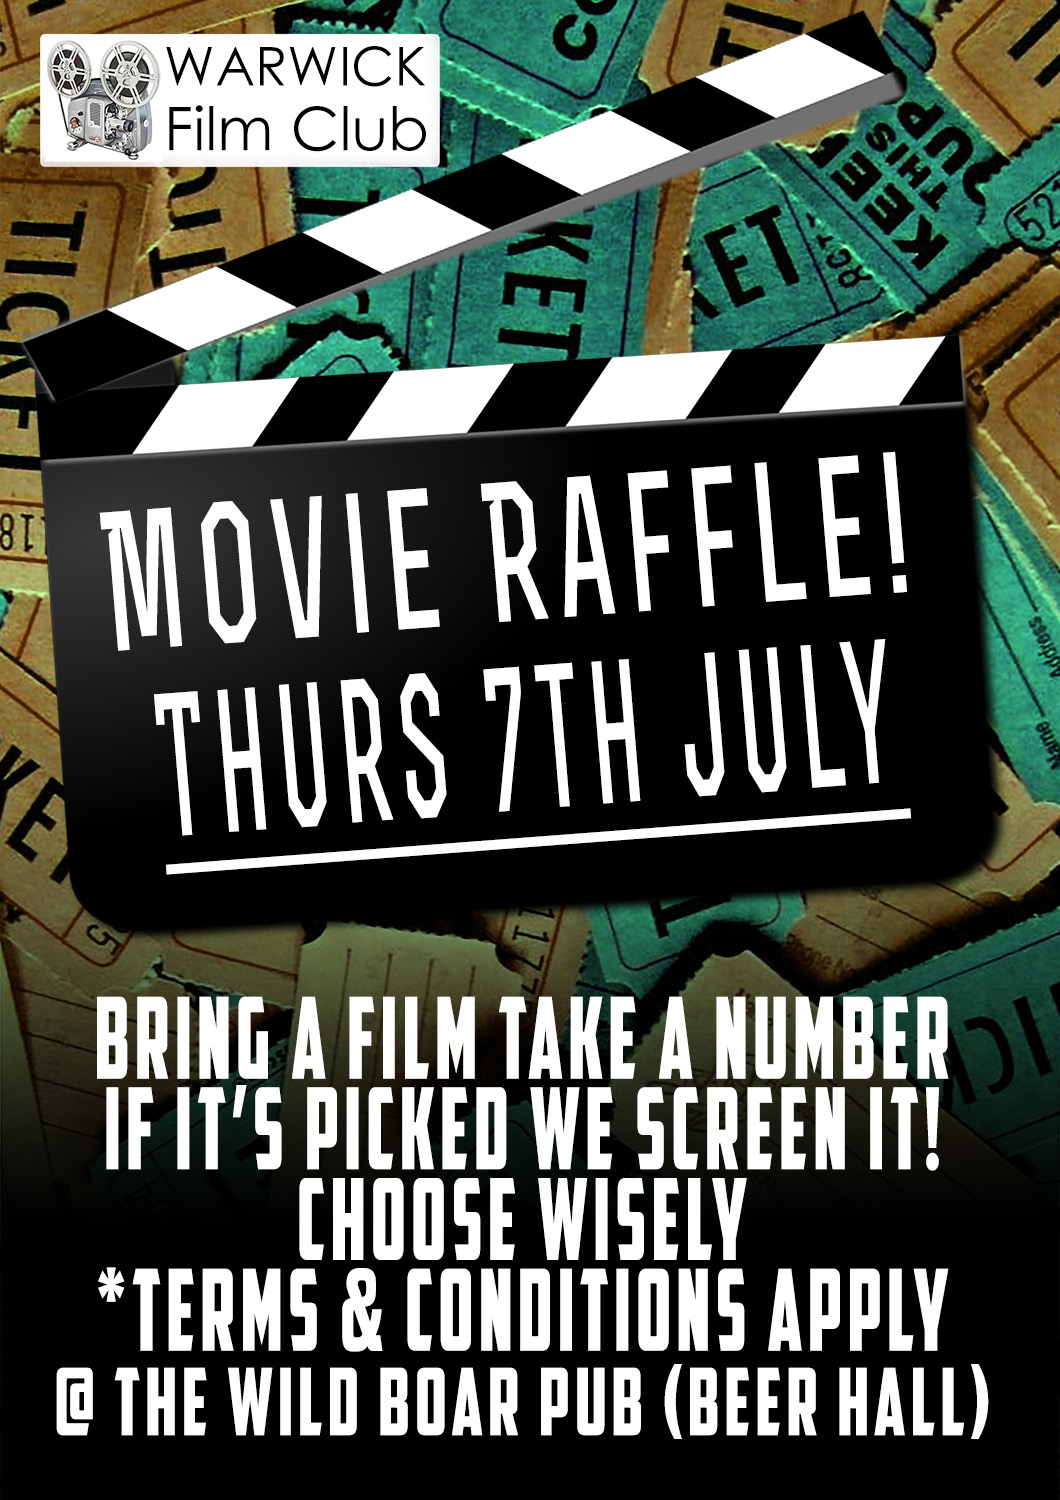 film club movie raffle